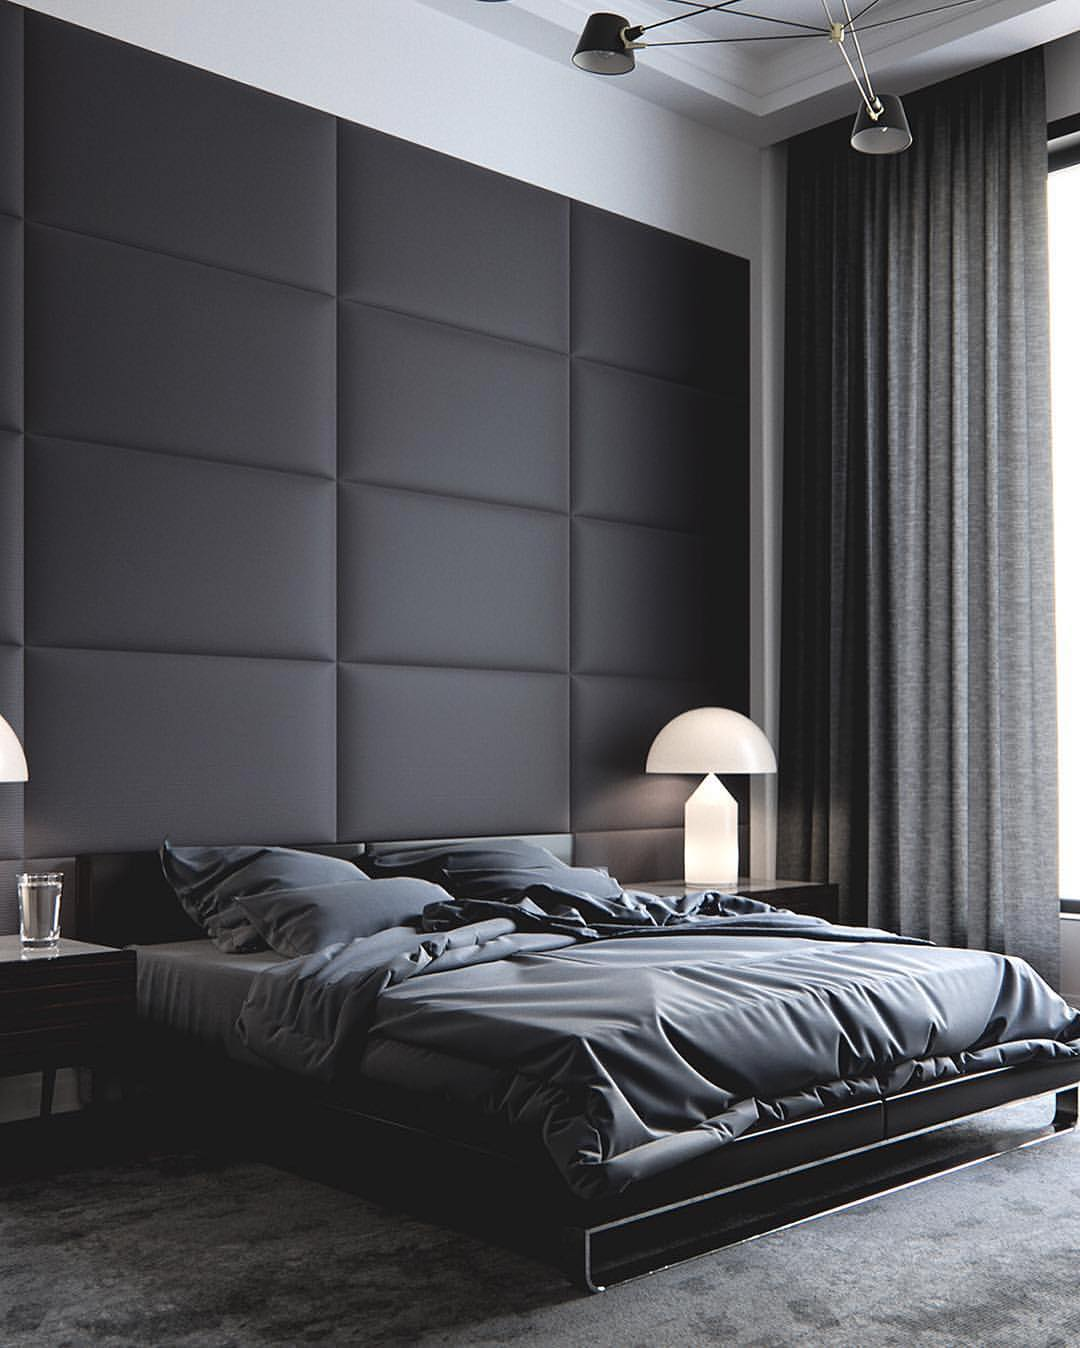 Modern Homes Bedrooms Designs Best Bedrooms Designs Ideas: 10 Chambres Inspirantes Aux Tonalités Masculines